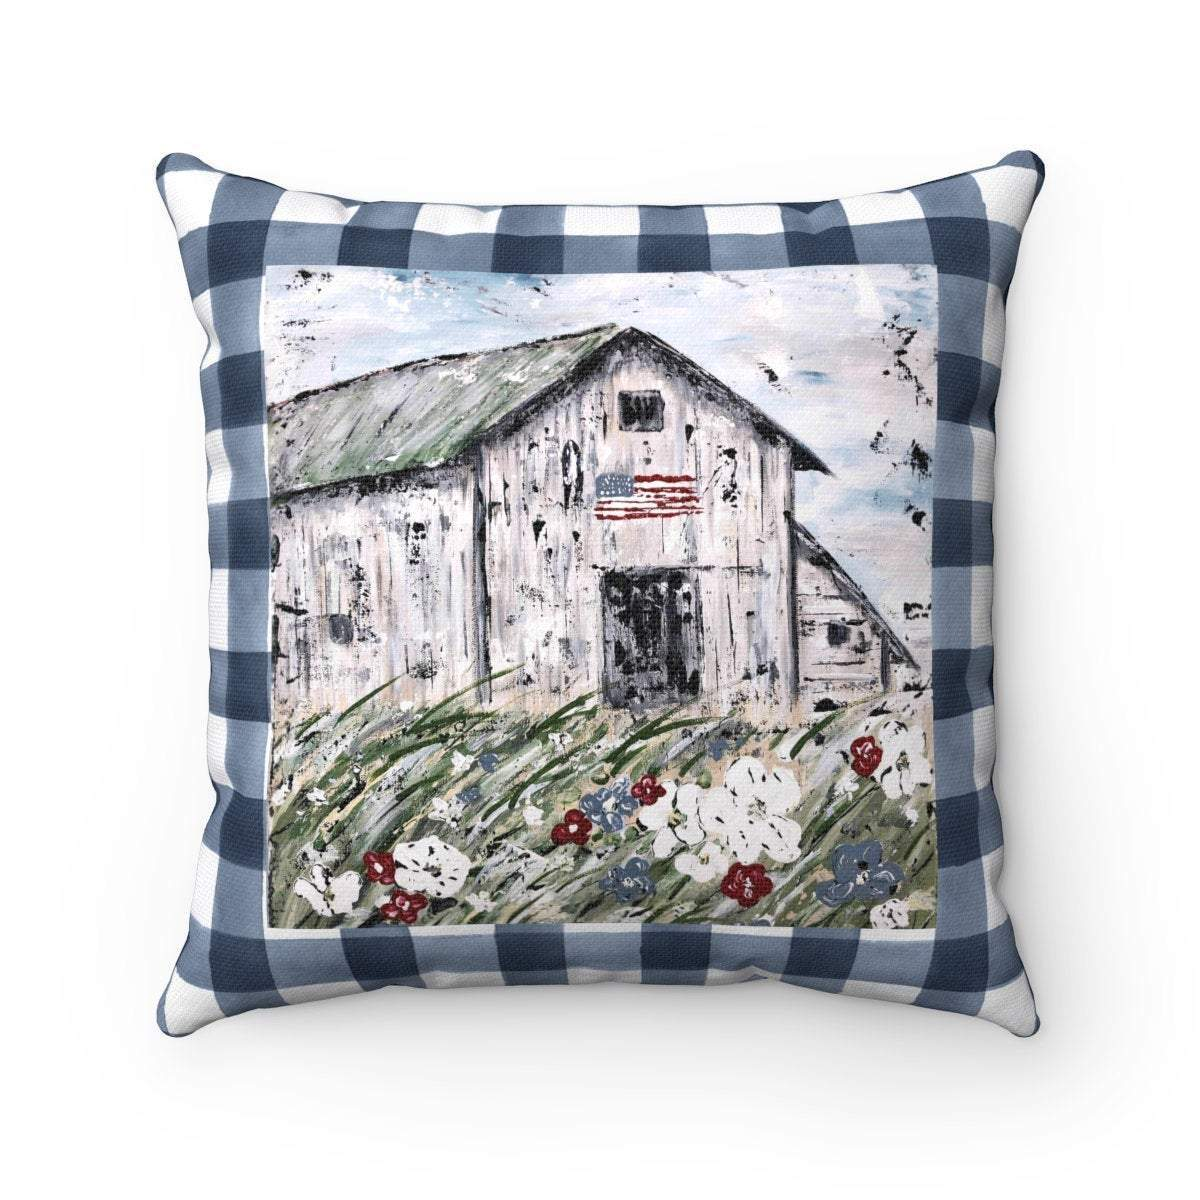 USA Barn. Spun Polyester Square Pillow. With or Without Pillow Insert. - Gin's Den